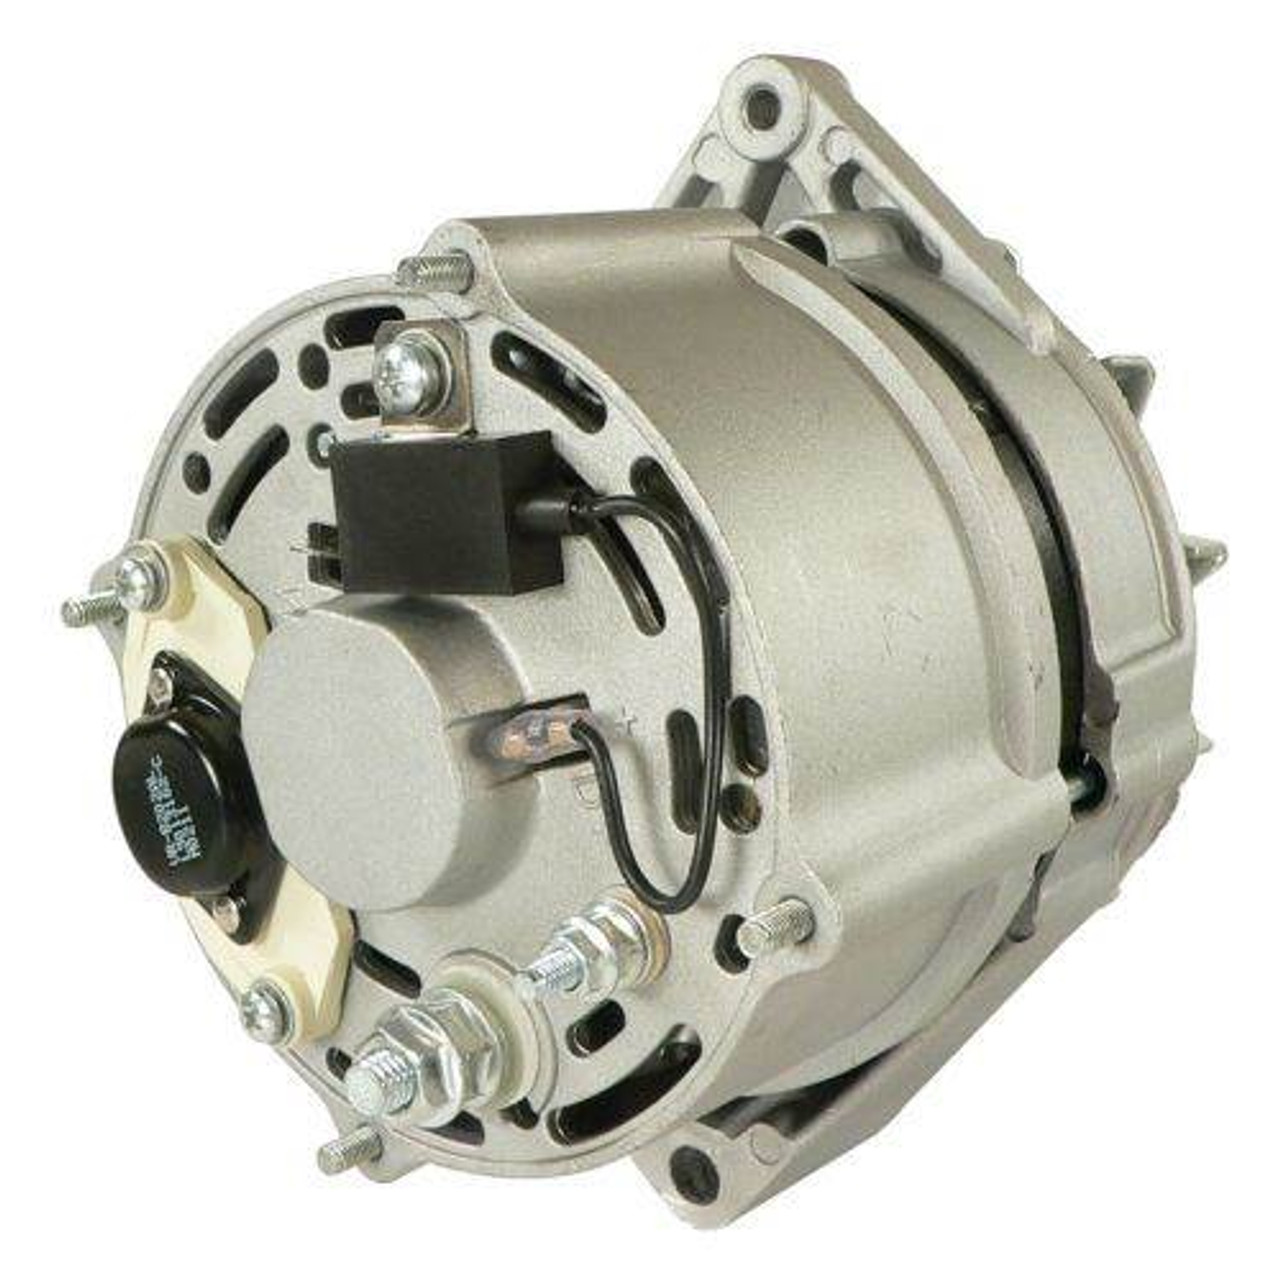 John Deere Engine 4045 12v 60a Alternator 12161